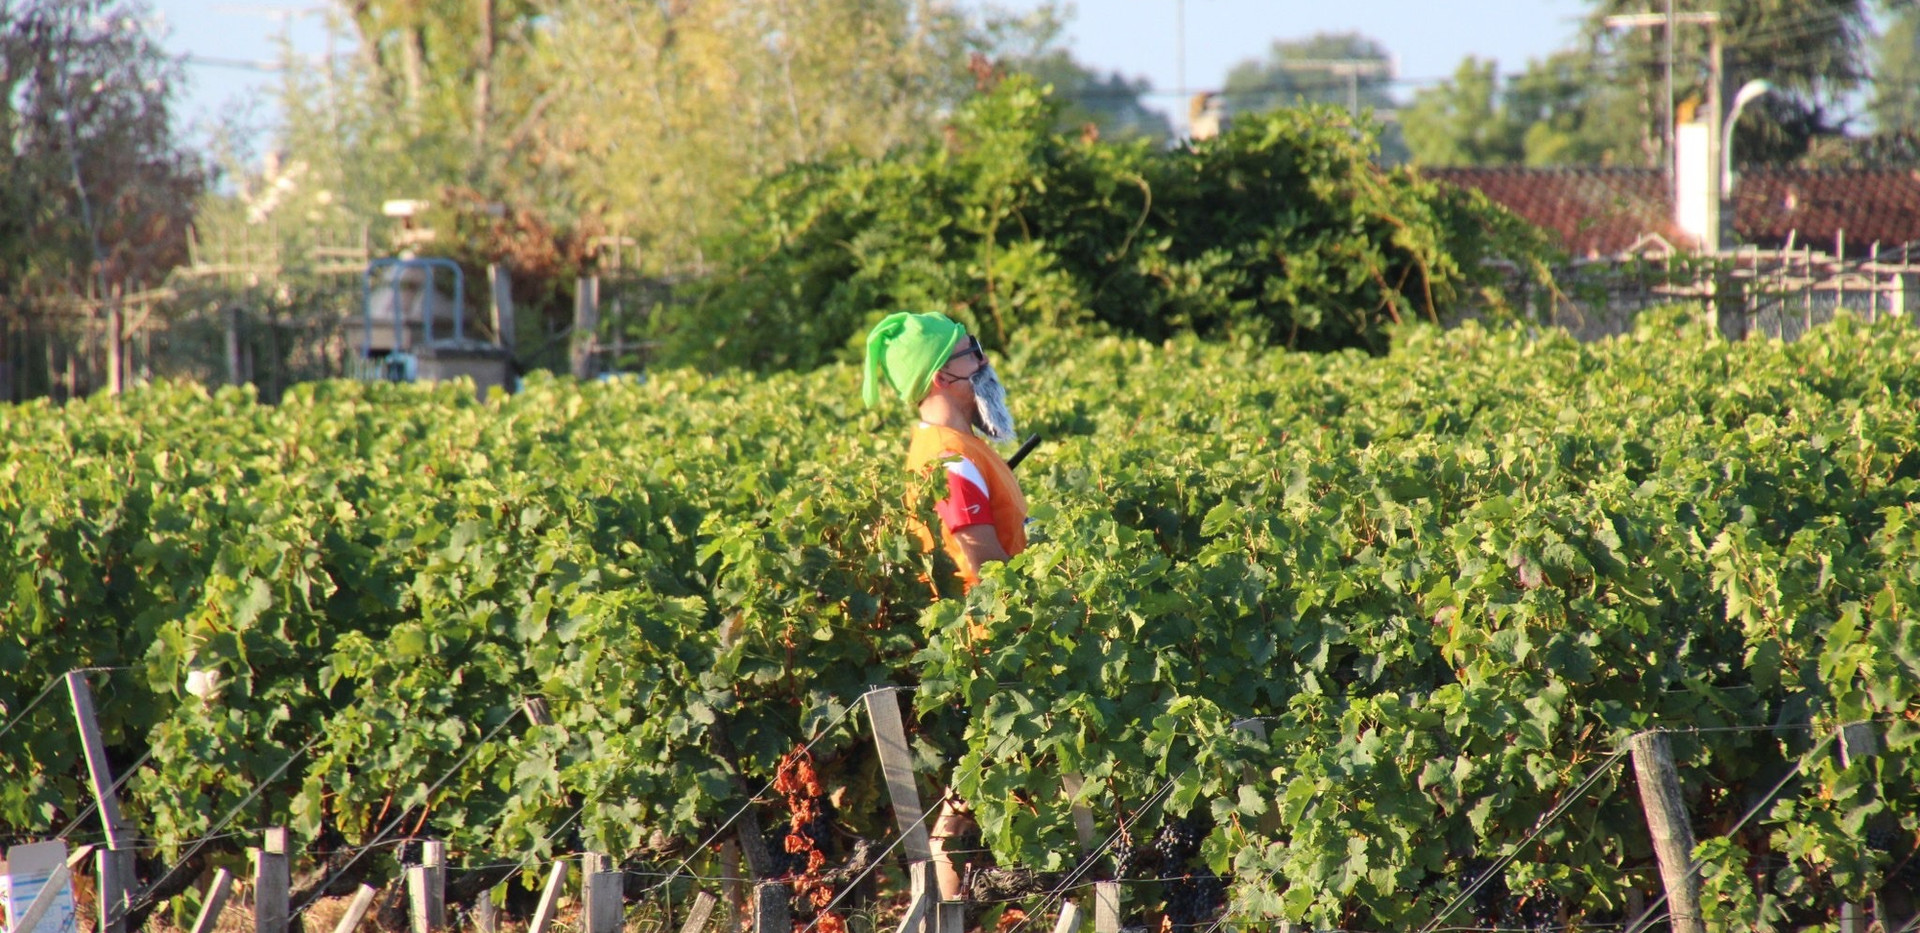 Snow White's Friend in the Vines - Marathon du Medoc